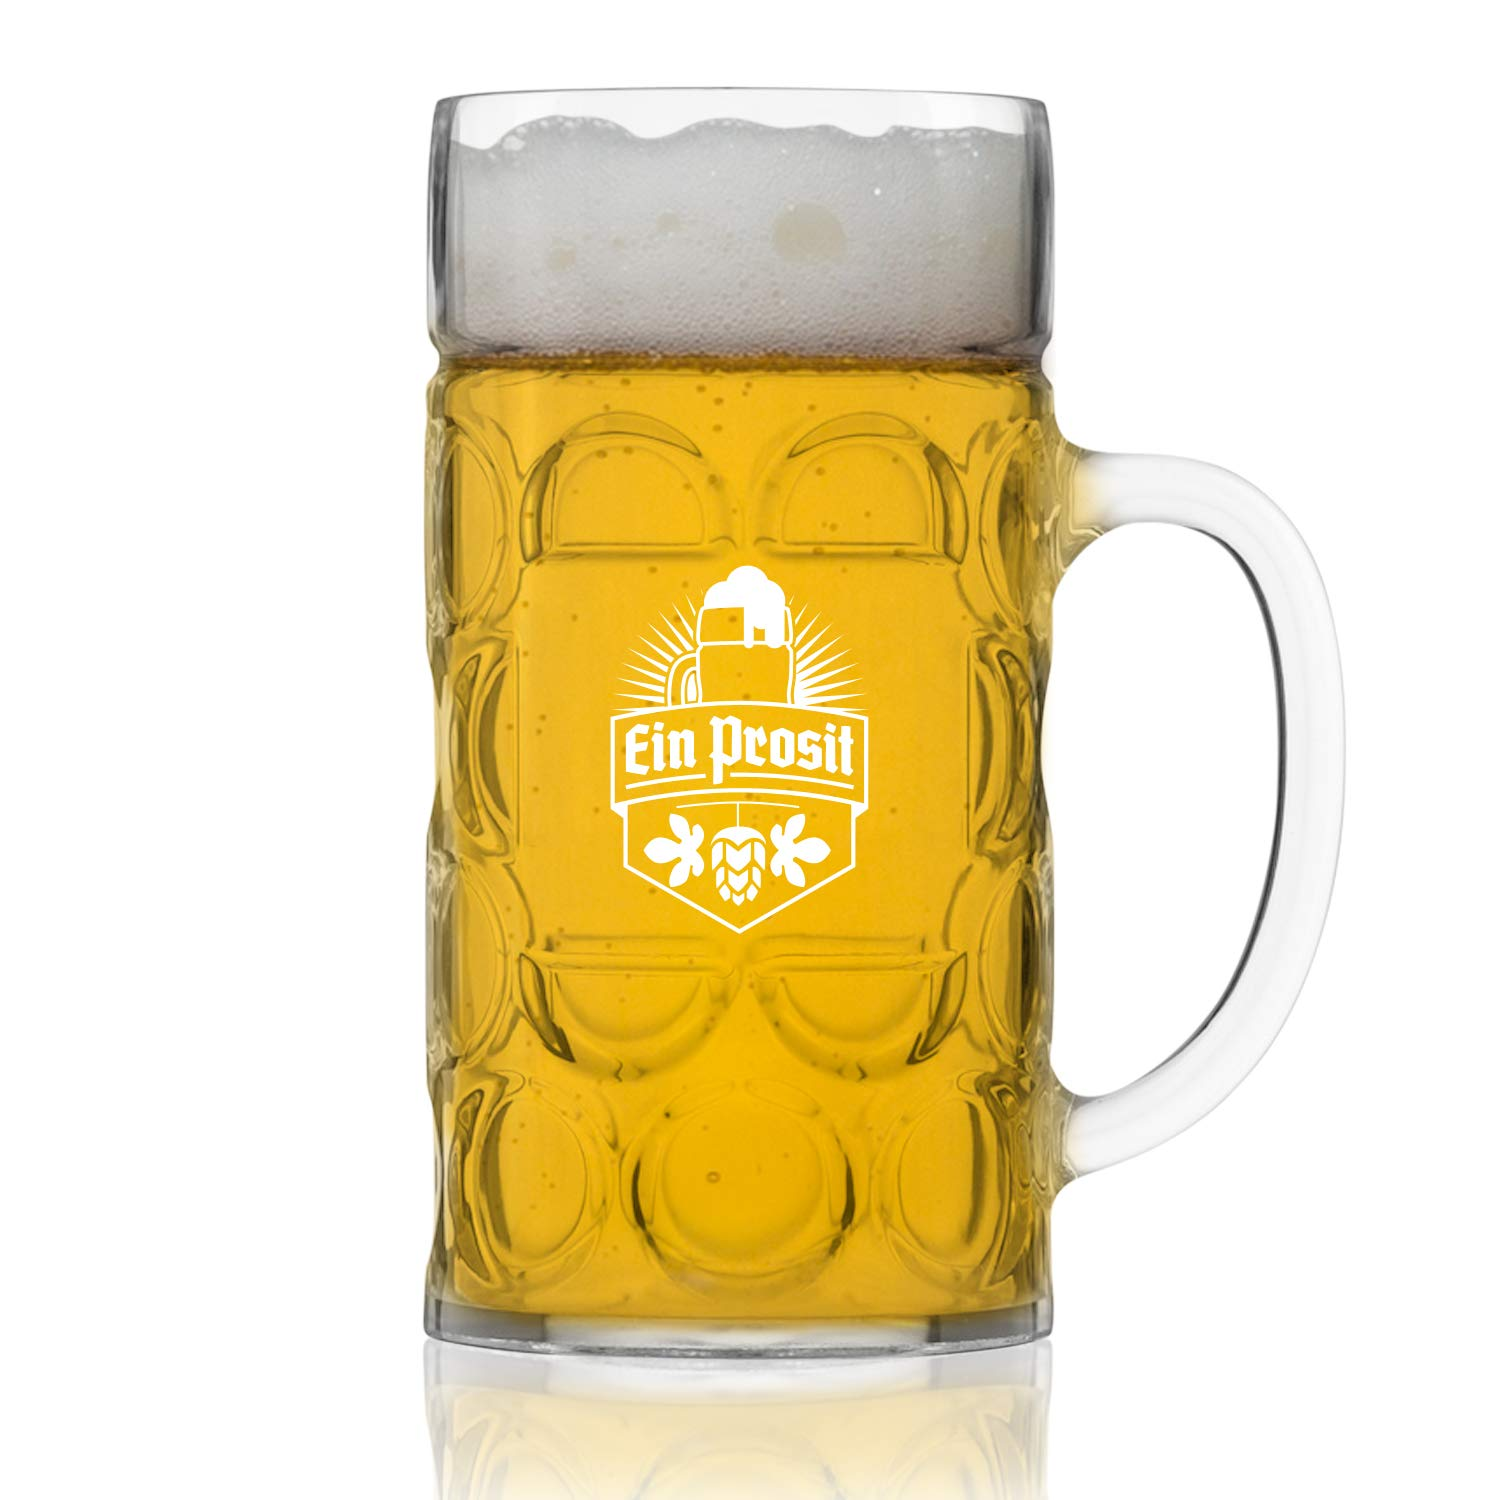 Unbreakable 1L Oktoberfest German Beer Mug with Handle (44 oz.) Classic Stein with Dimpled Finish- Vintage Party Brew Tankard- Thick, Durable Styrene- Made in USA